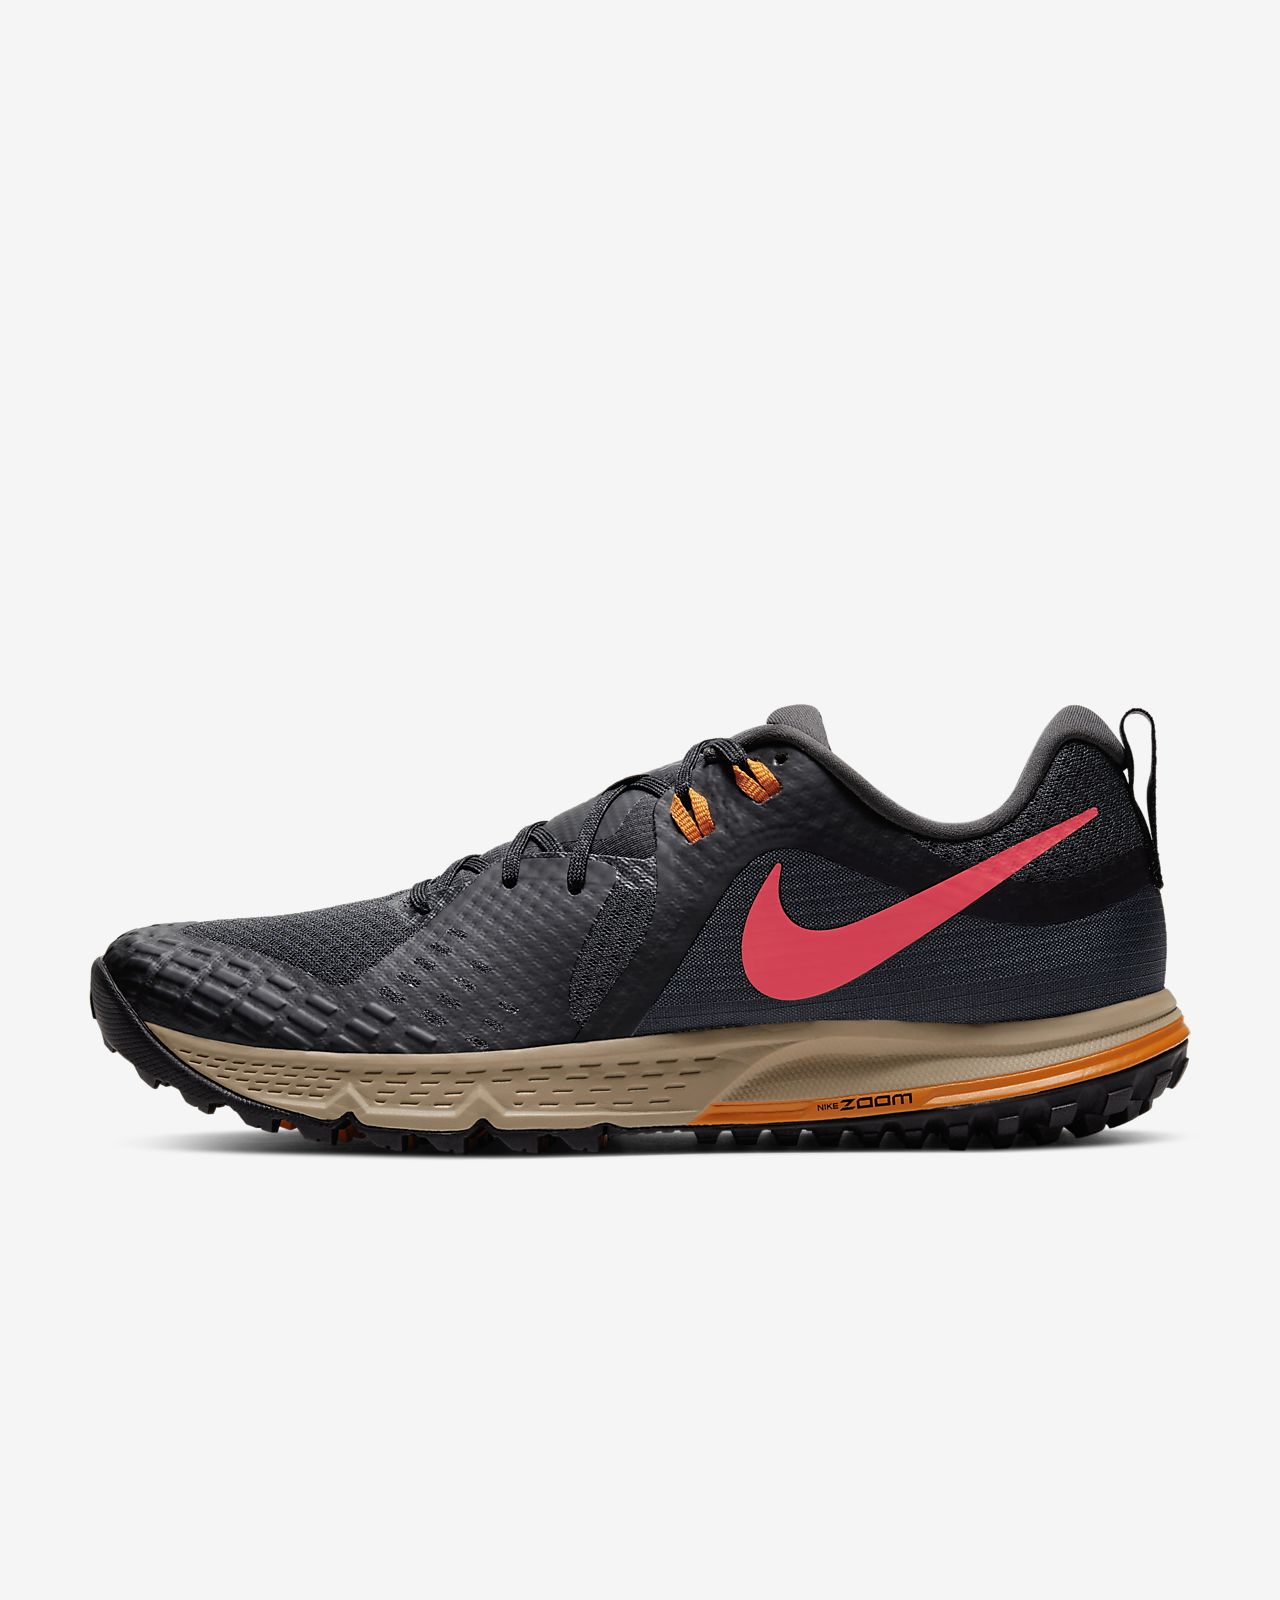 AQ2222-400 Nike Air Zoom Wildhorse 5 Men/'s Trail Running Shoes Blue 2019